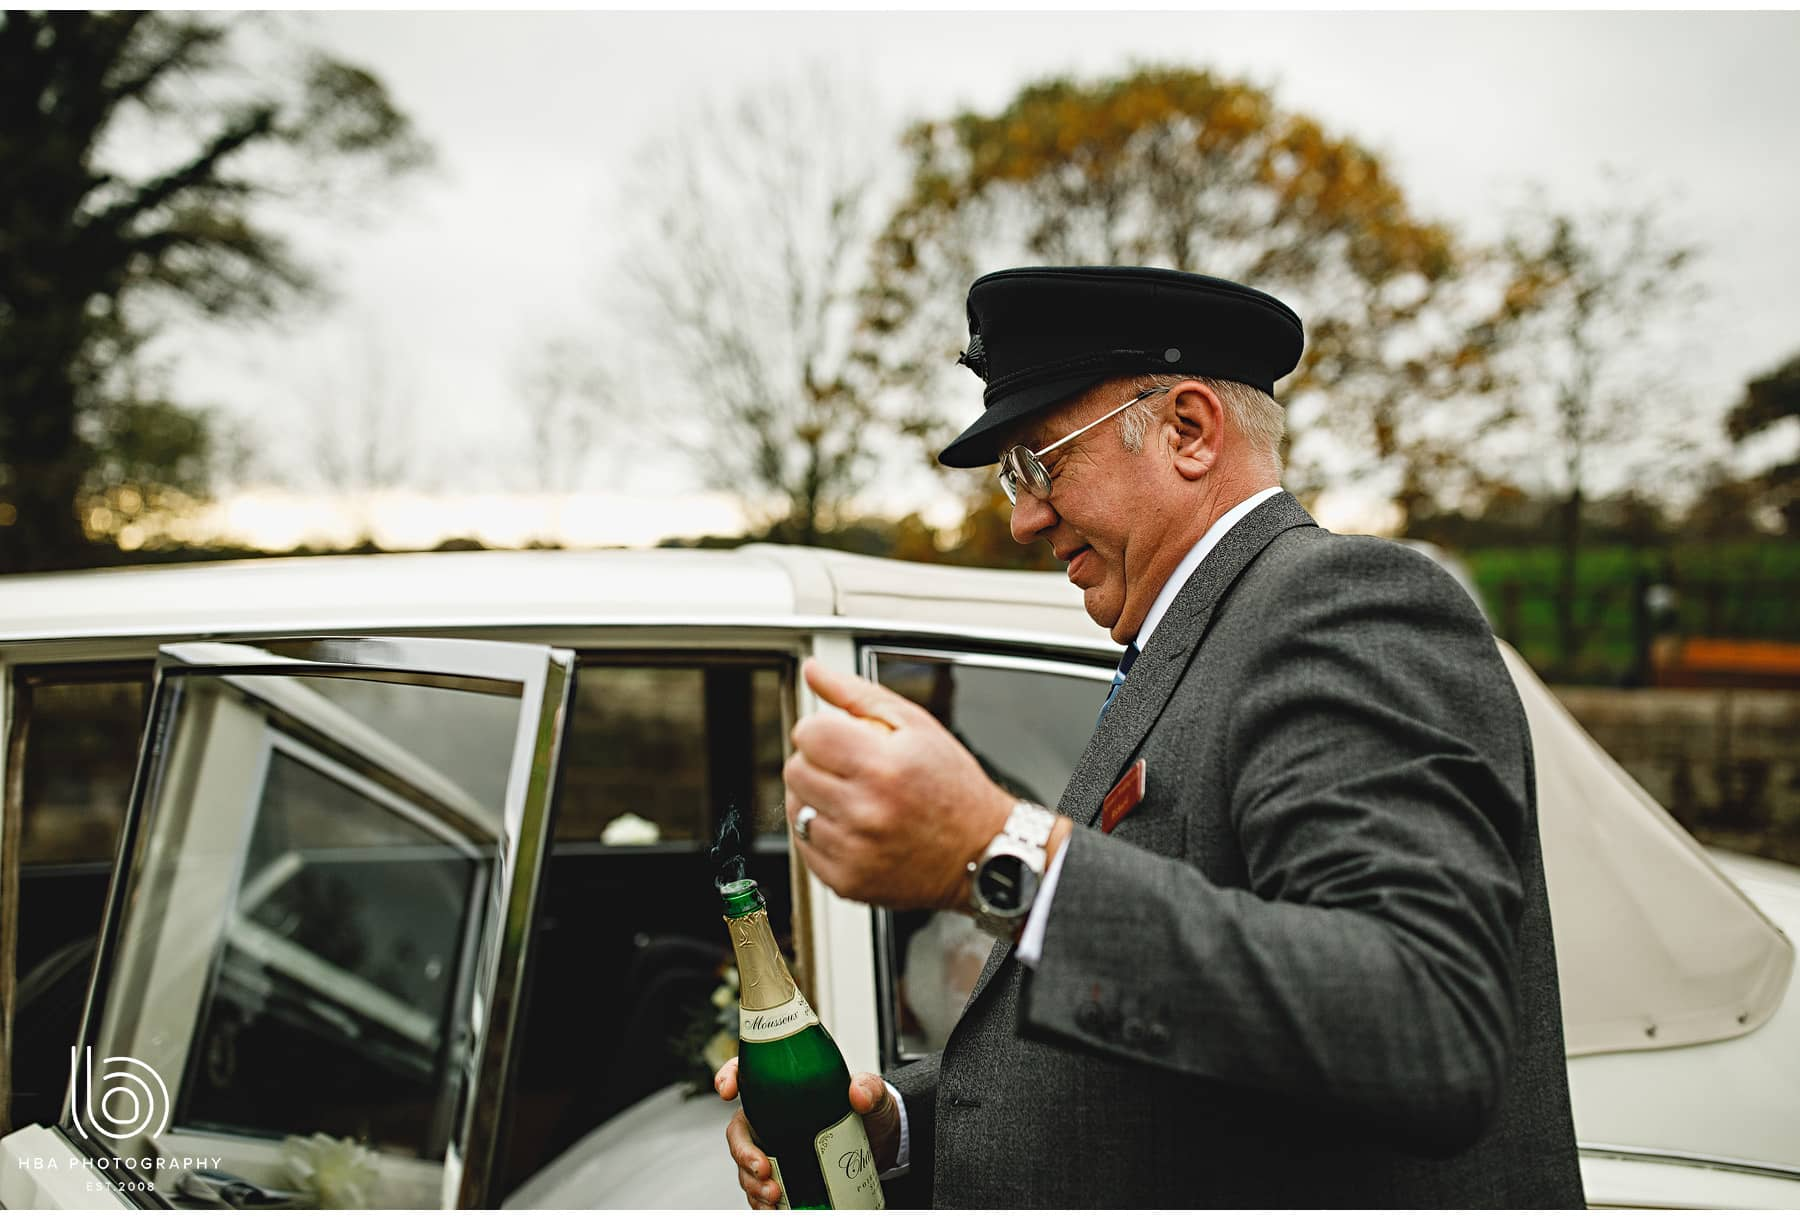 the chauffeur handing out champagne